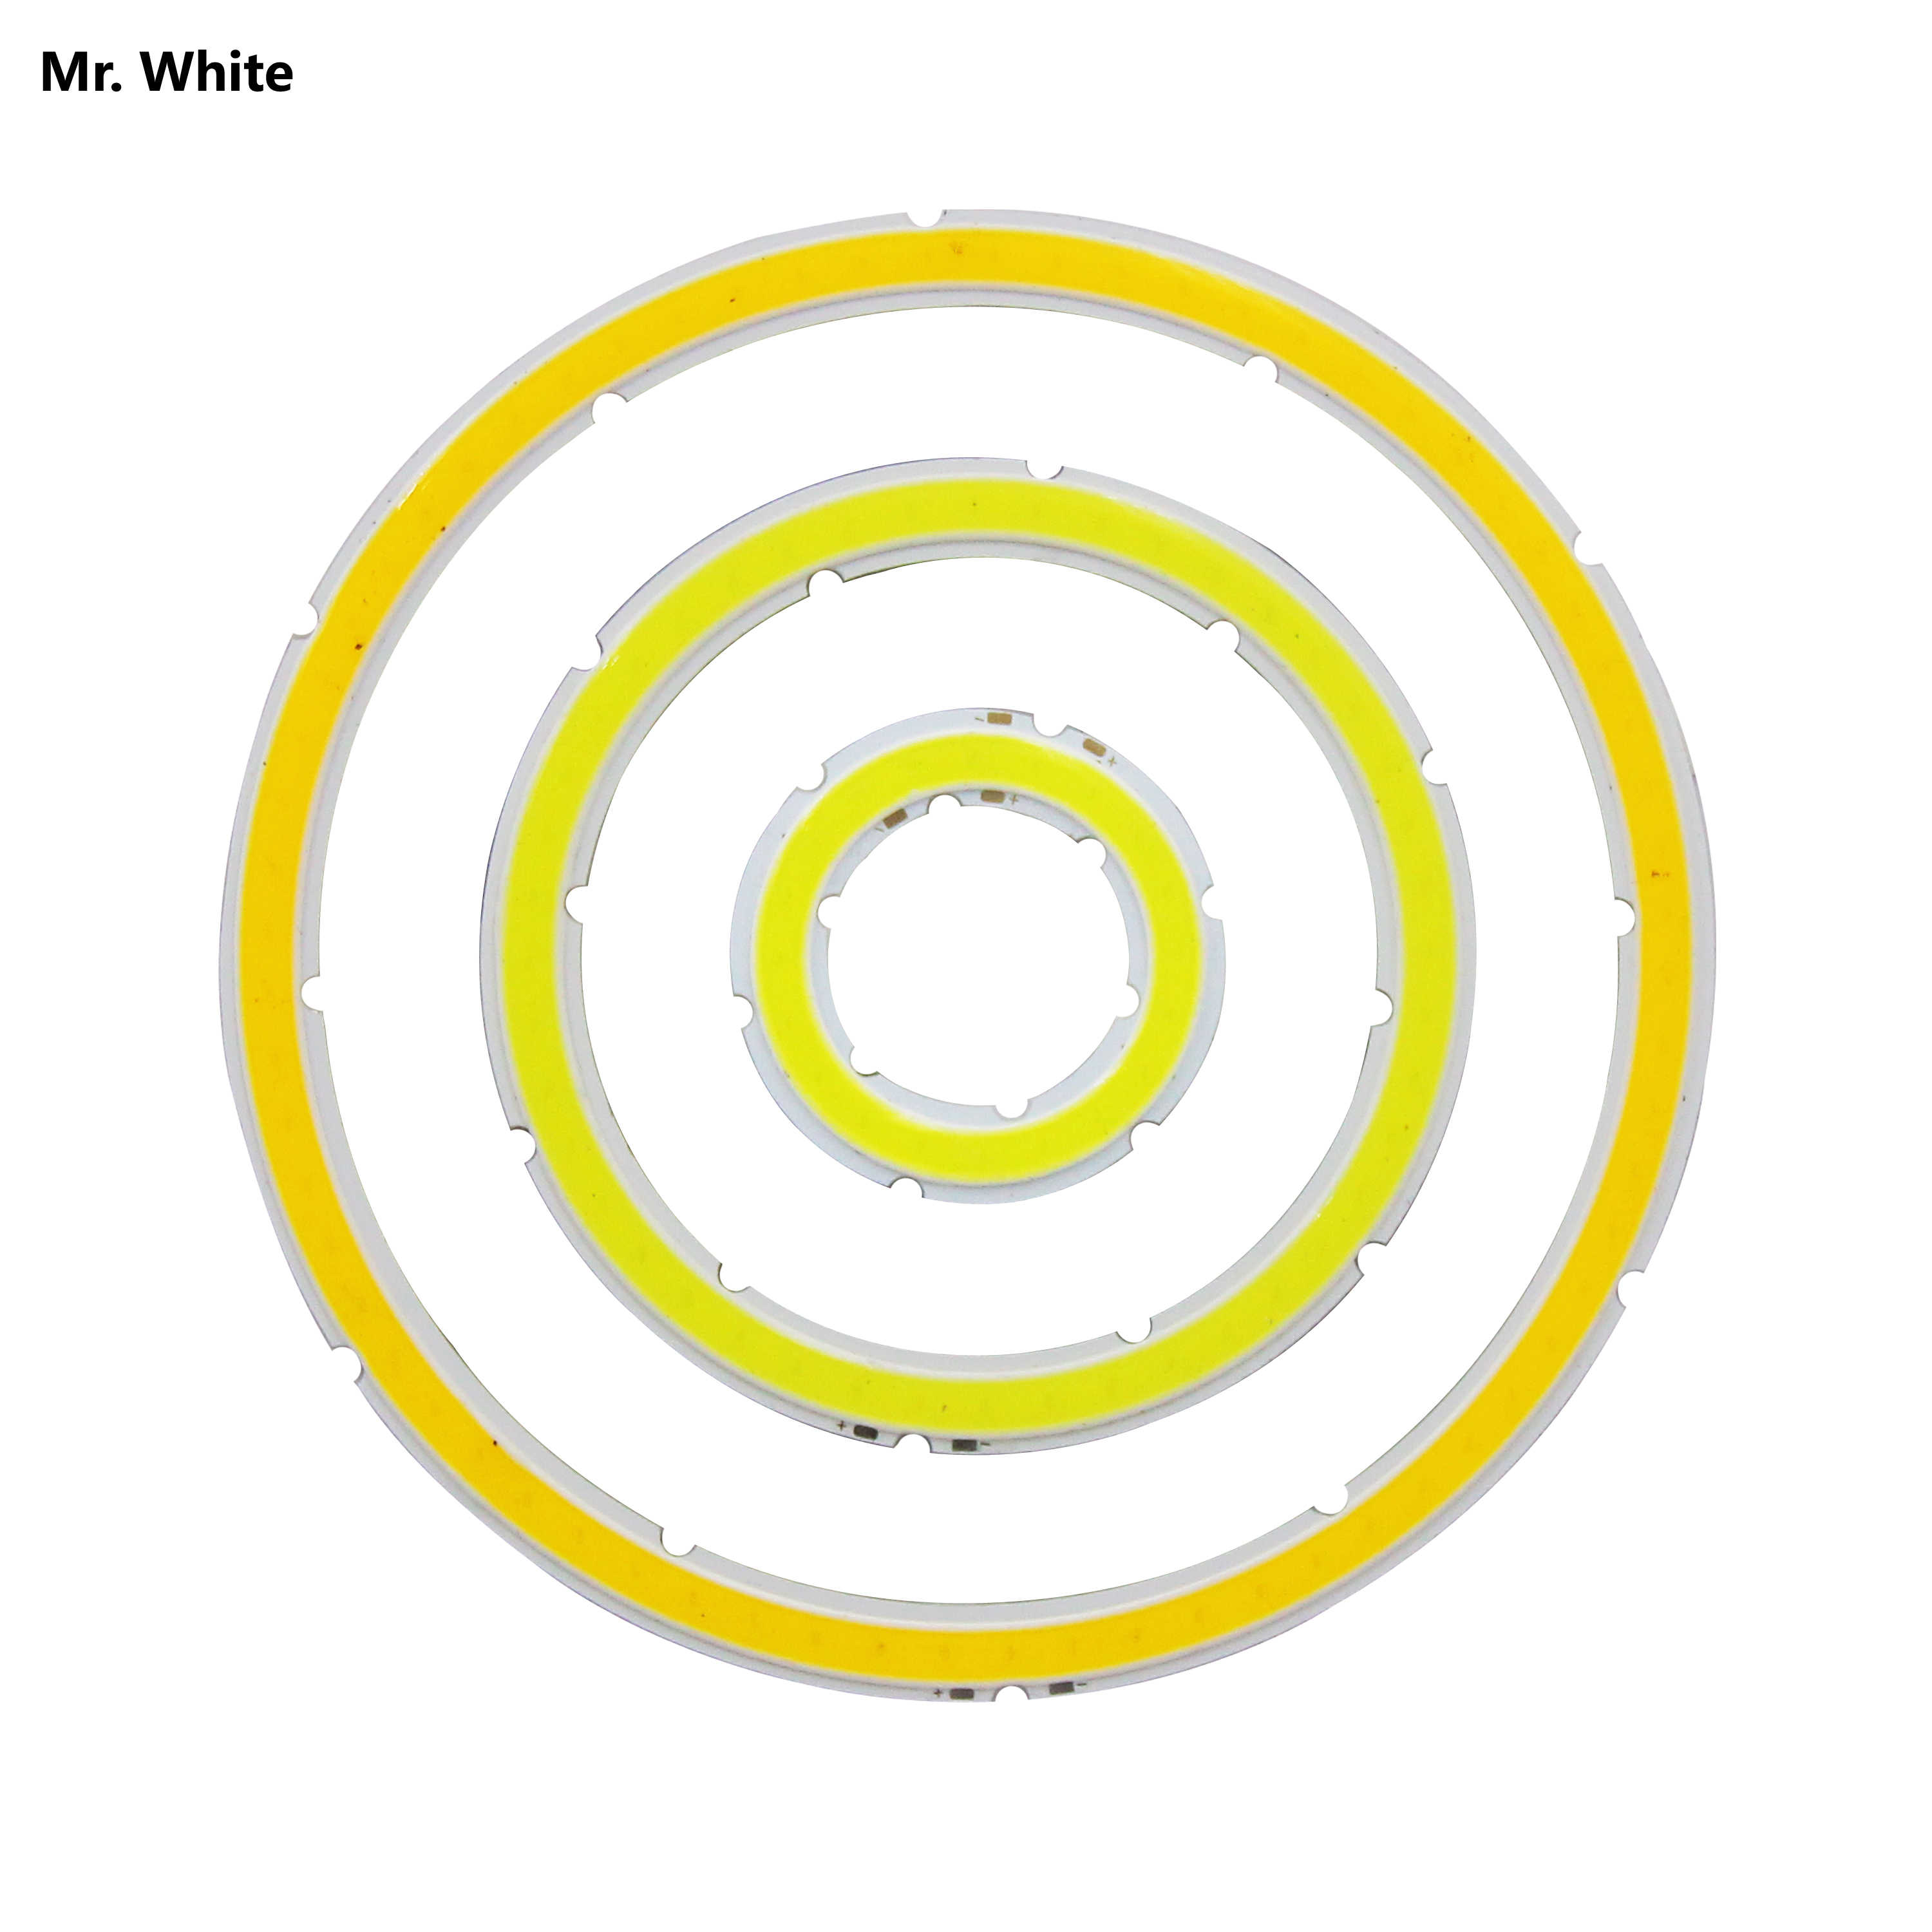 12V DC annular cob led light source 3w-15w angle eye 30mm-120mm warm cold white Ice blue cob chip for DIY